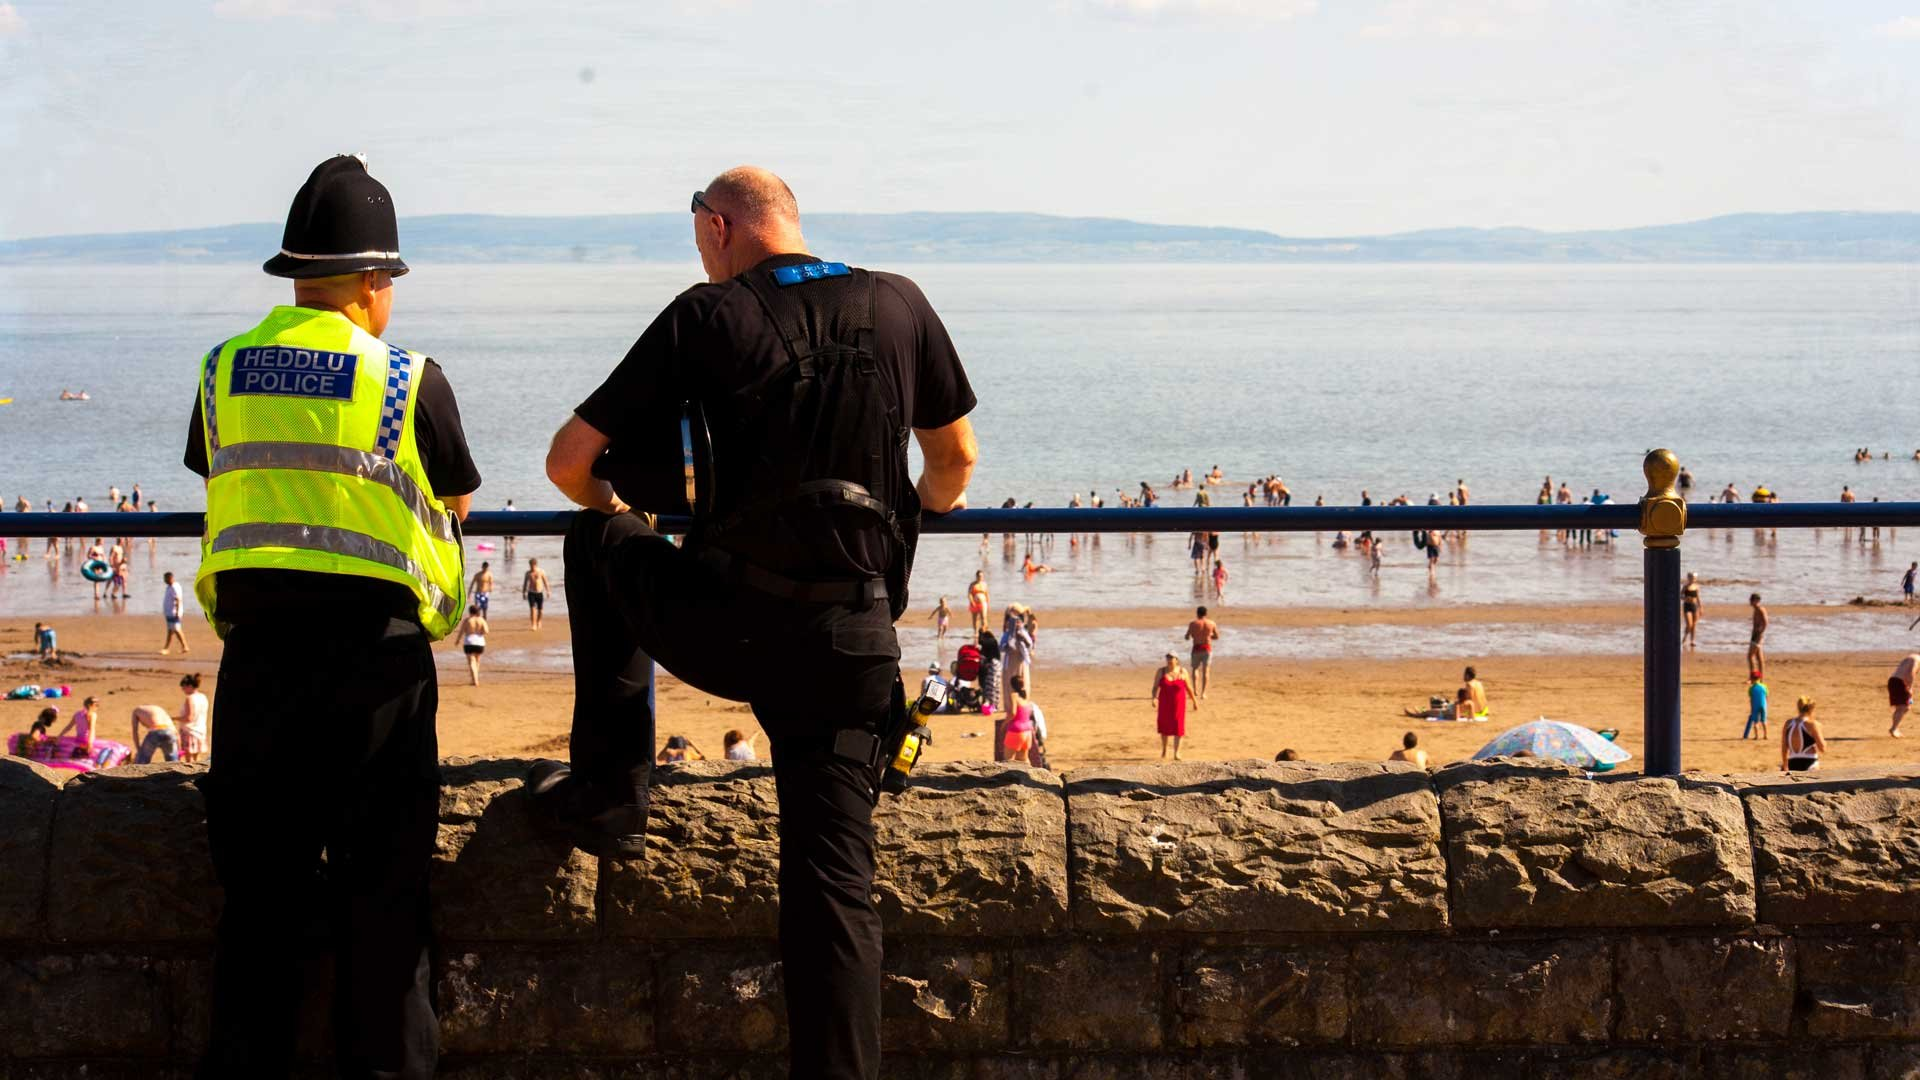 Heatwave: Is there more crime in hot weather?